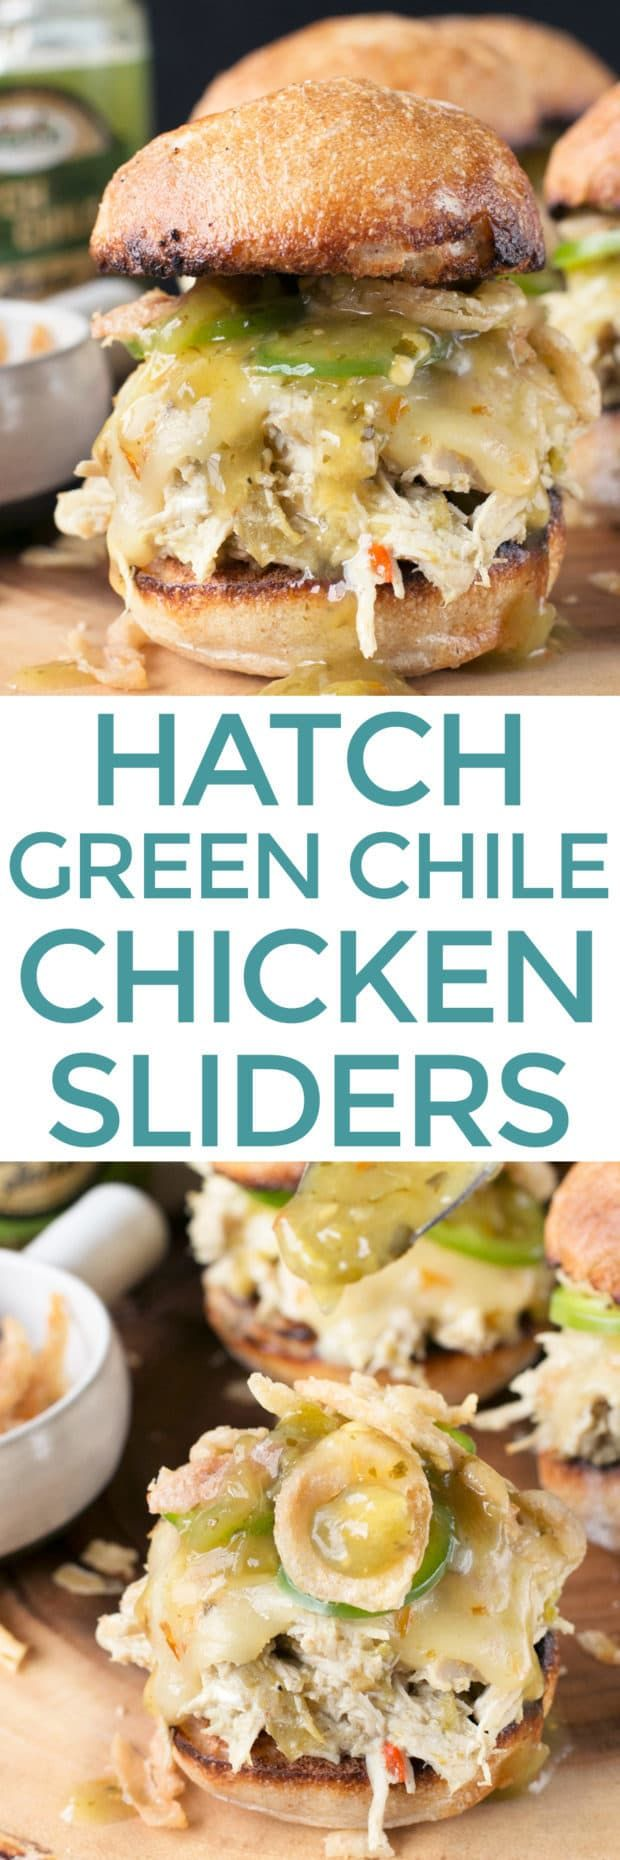 Tailgating season is just around the corner and I'm getting ready with all the spicy things! Hatch Green Chile Chicken Sliders are juicy, spicy mini sandwiches of heaven that are simply irresistible. Hatch Green Chile Chicken Sliders | cakenknife.com @sprouts #tailgating #sandwich #recipe